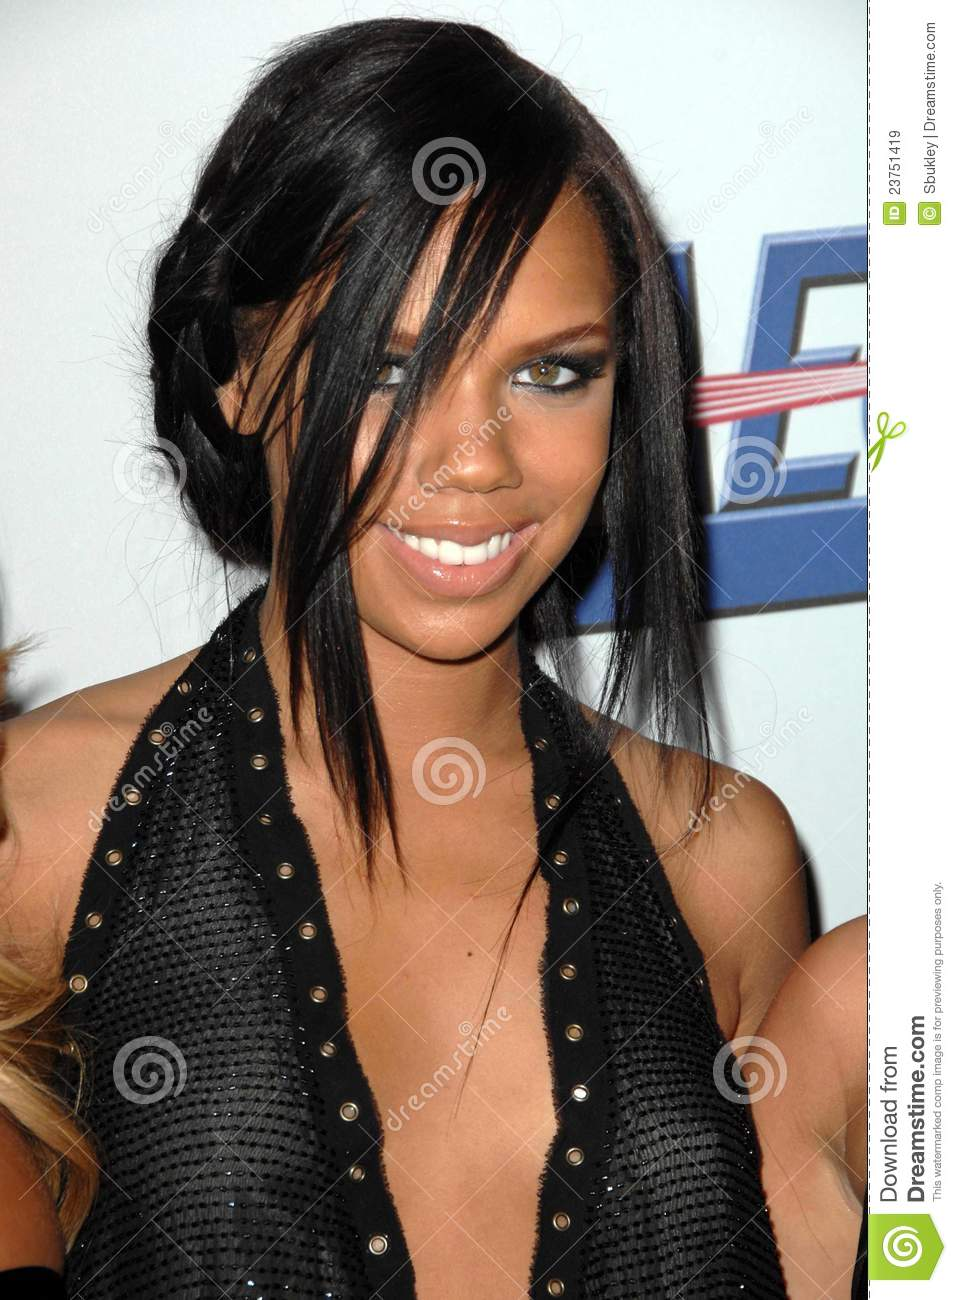 Kiely Williams Boyfriend 2013 | www.galleryhip.com - The Hippest Pics Kiely Williams And Shia Labeouf